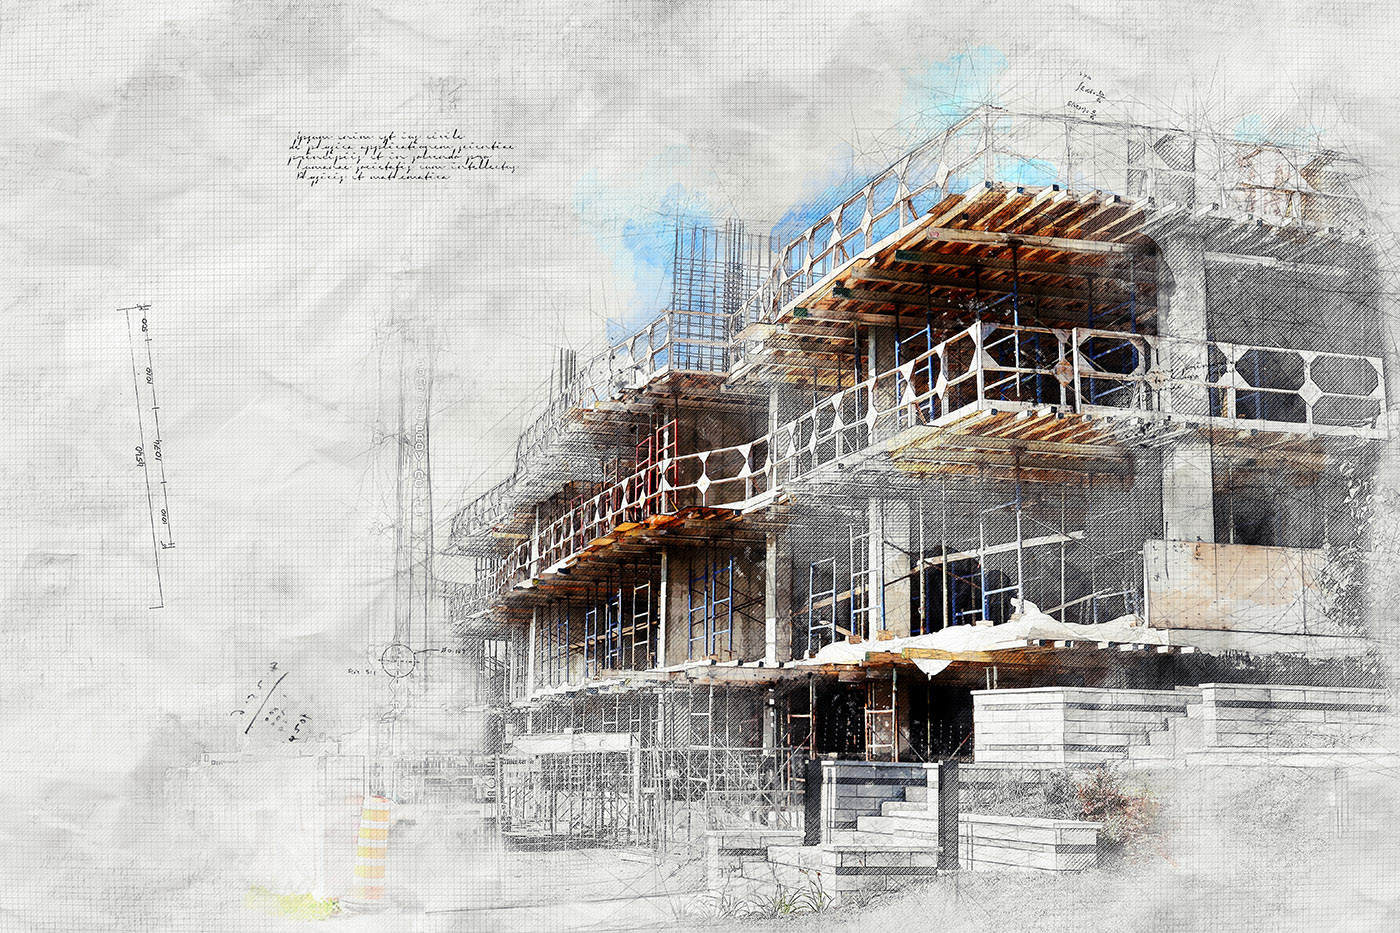 Construction Project Sketch Image - Stock Photos, Pictures & Images